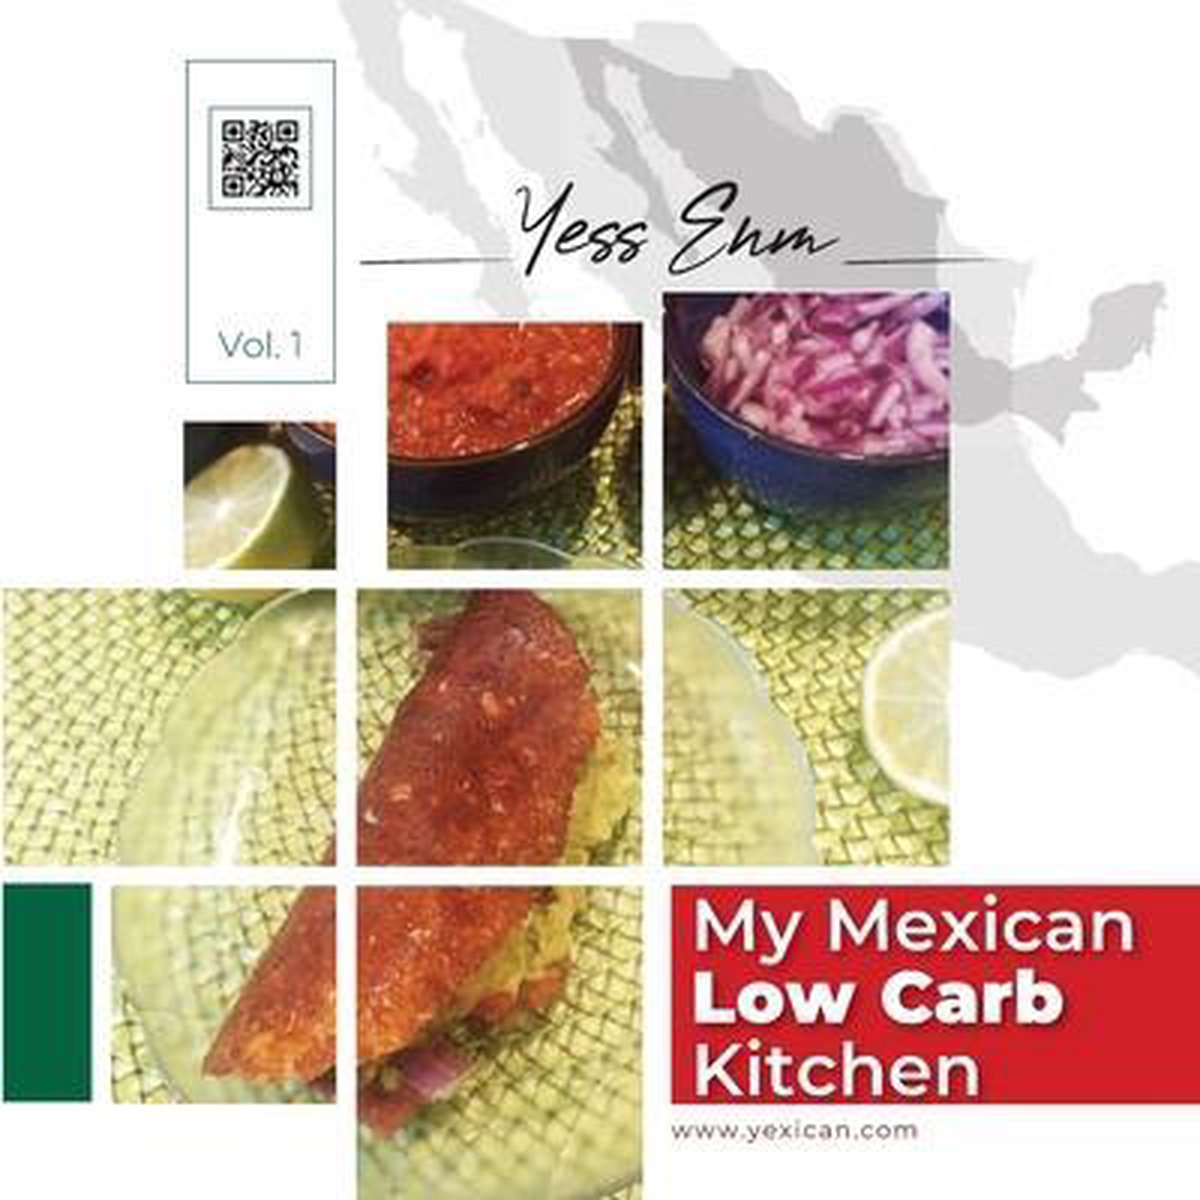 My Mexican Low Carb Kitchen